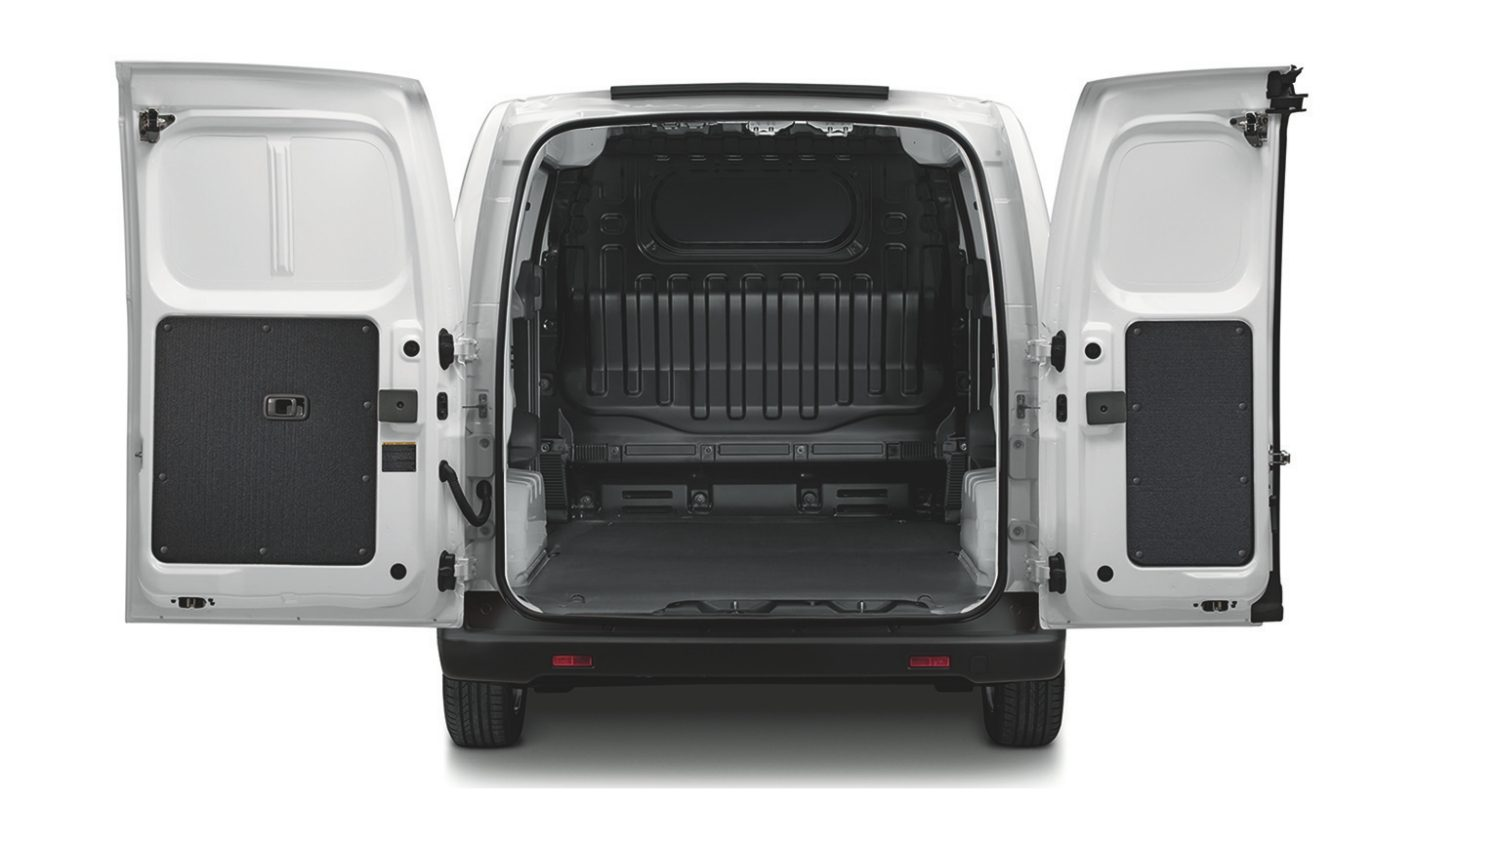 e-nv200 back opened 2 doors